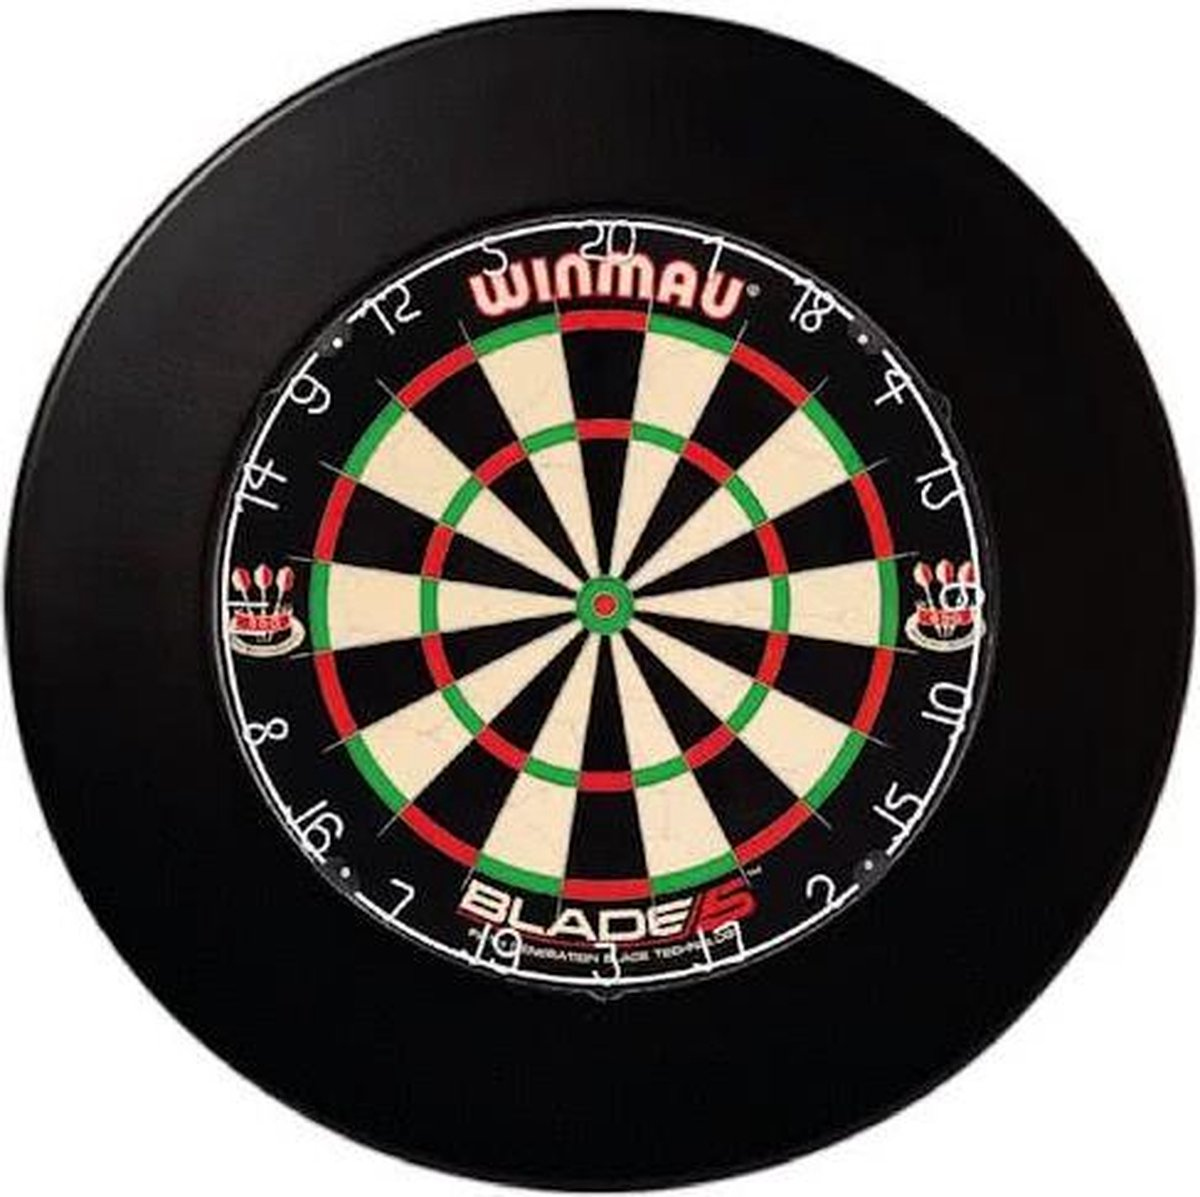 winmau blade 5 incl. rubberen surround ring zwart en scorebord